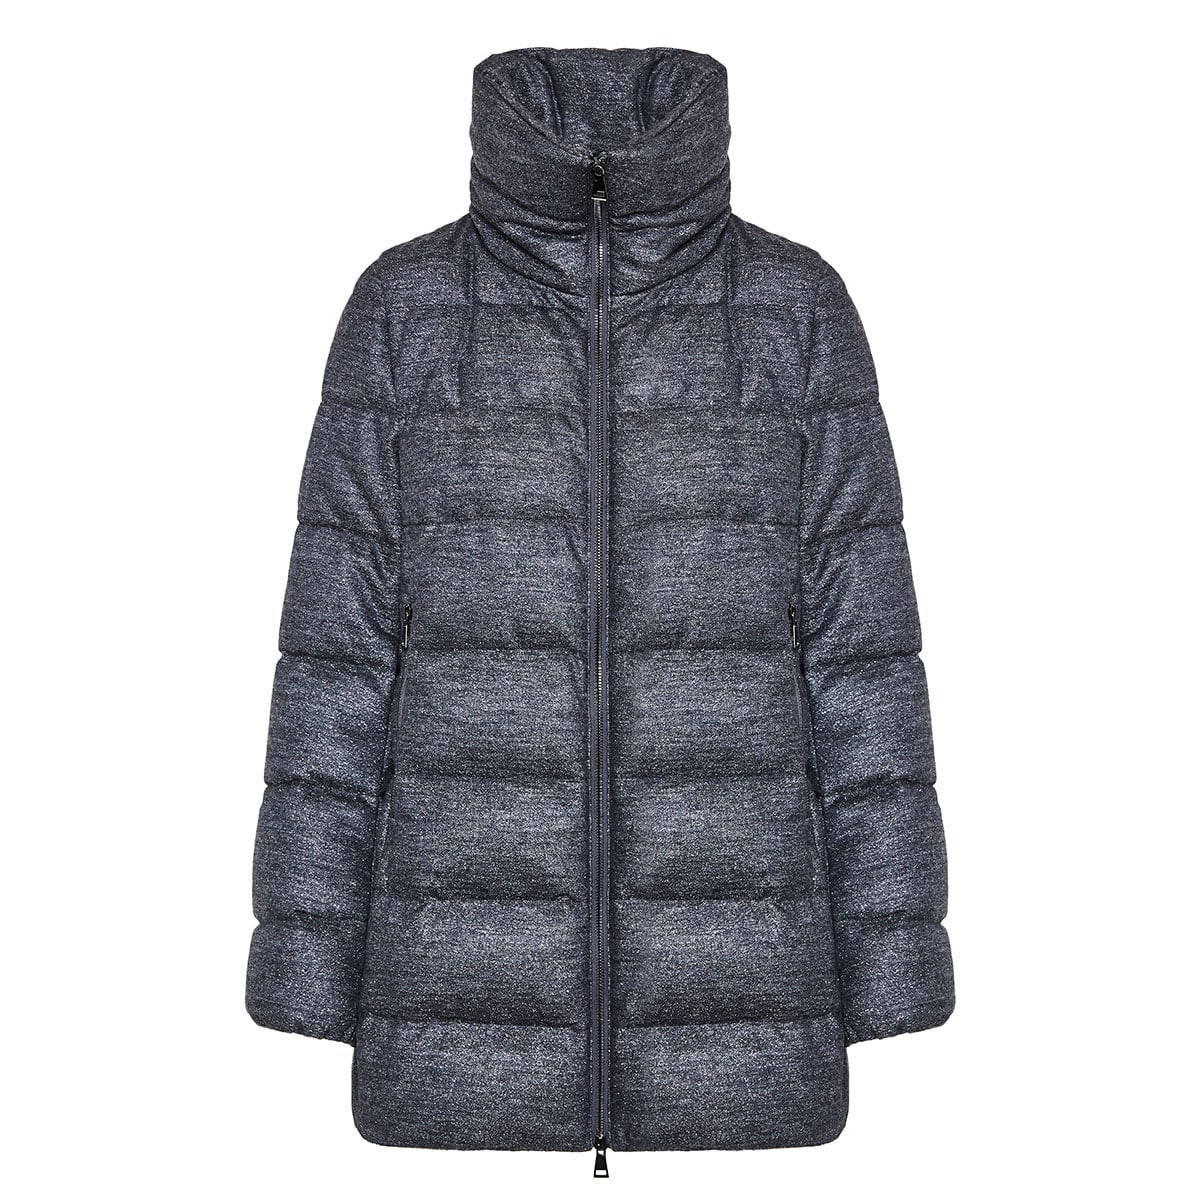 Torcon quilted puffer jacket